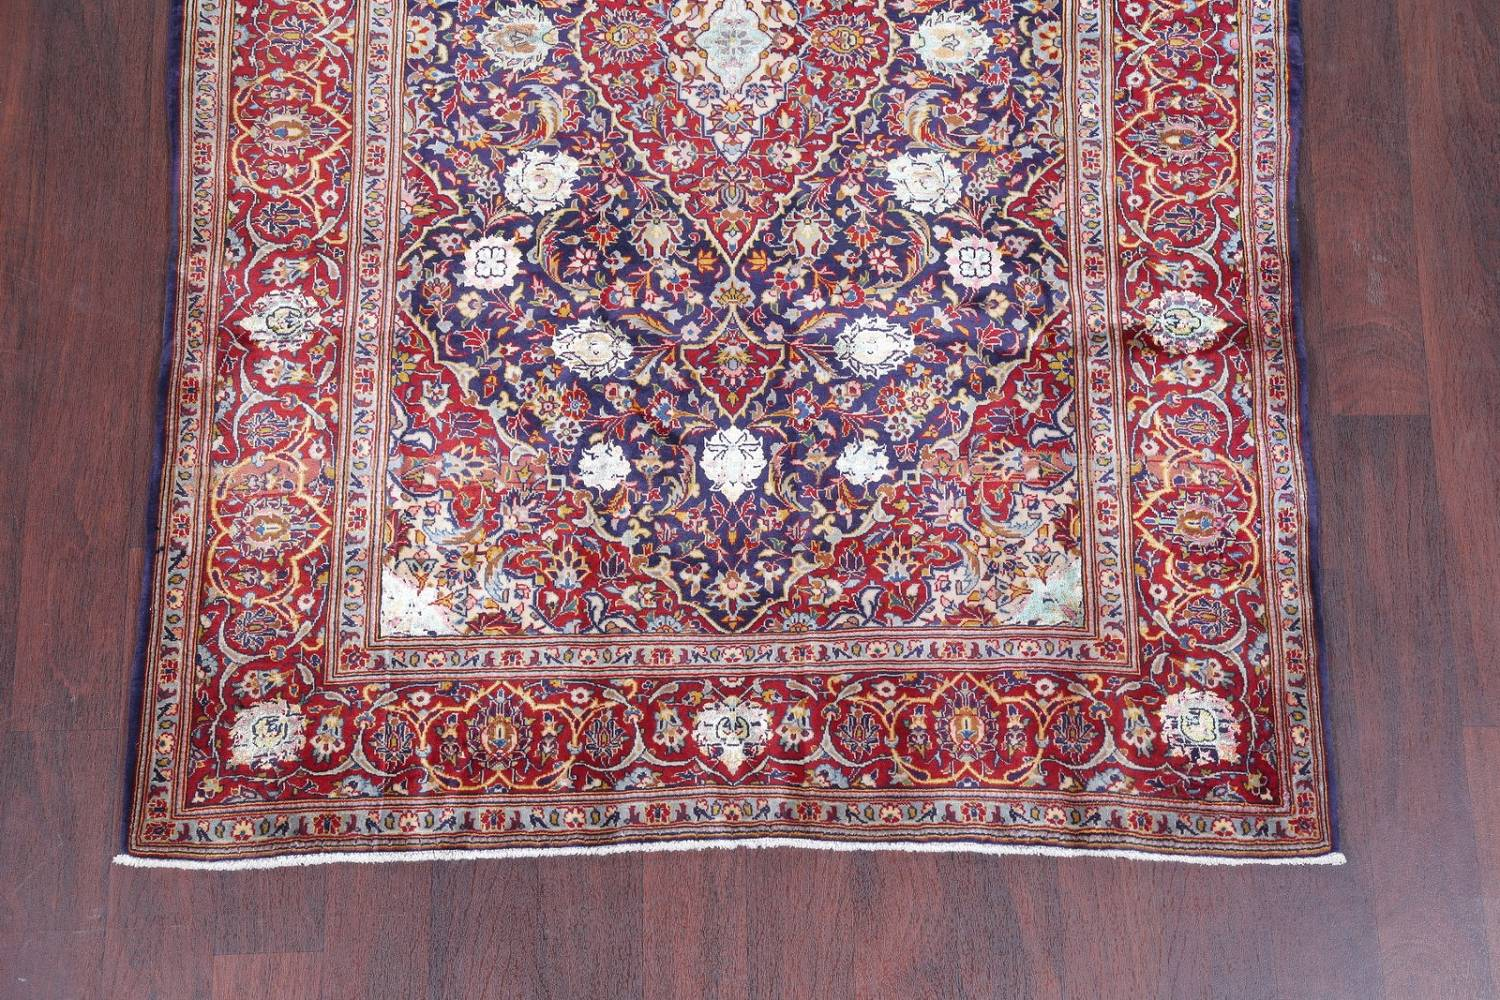 Vegetable Dye Floral Blue Kashan Persian Hand-Knotted Area Rug Wool 5x7 image 5